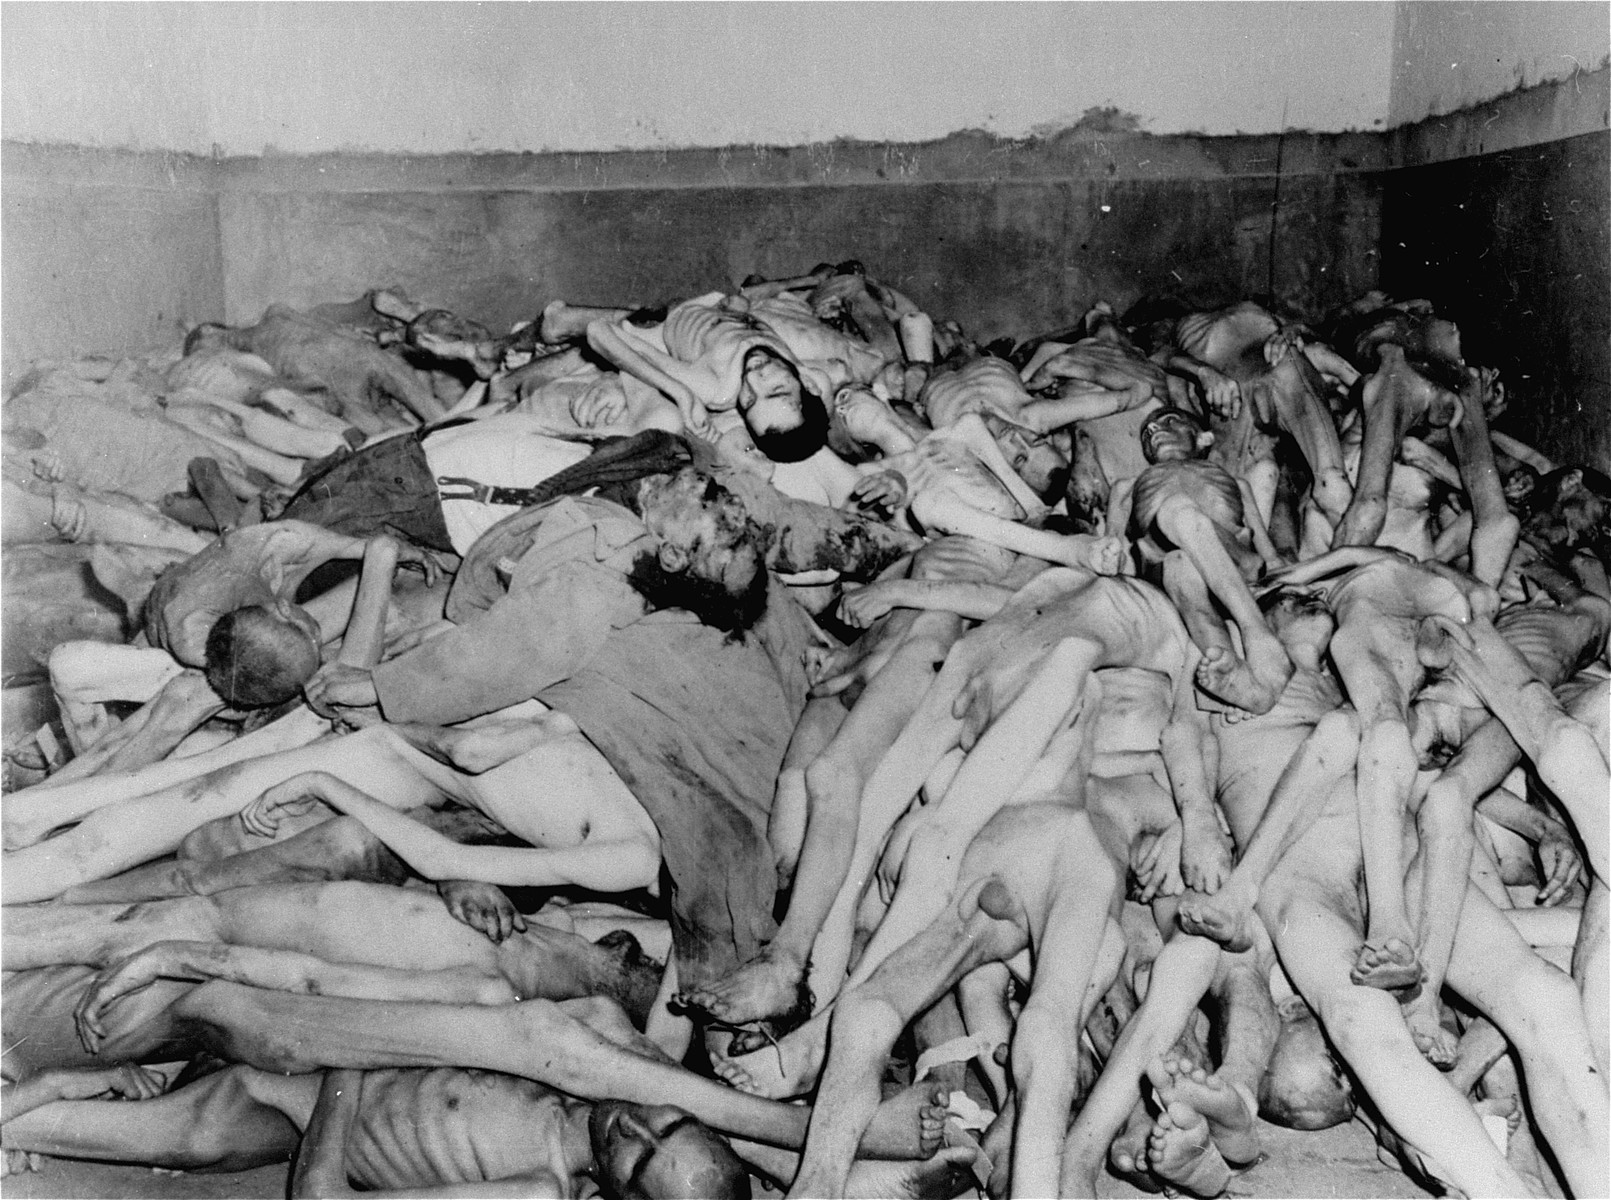 Corpses piled in the crematorium mortuary.  These rooms became so full of bodies that the SS staff and survivors began piling corpses behind the crematorium, where they were found by U.S. troops.